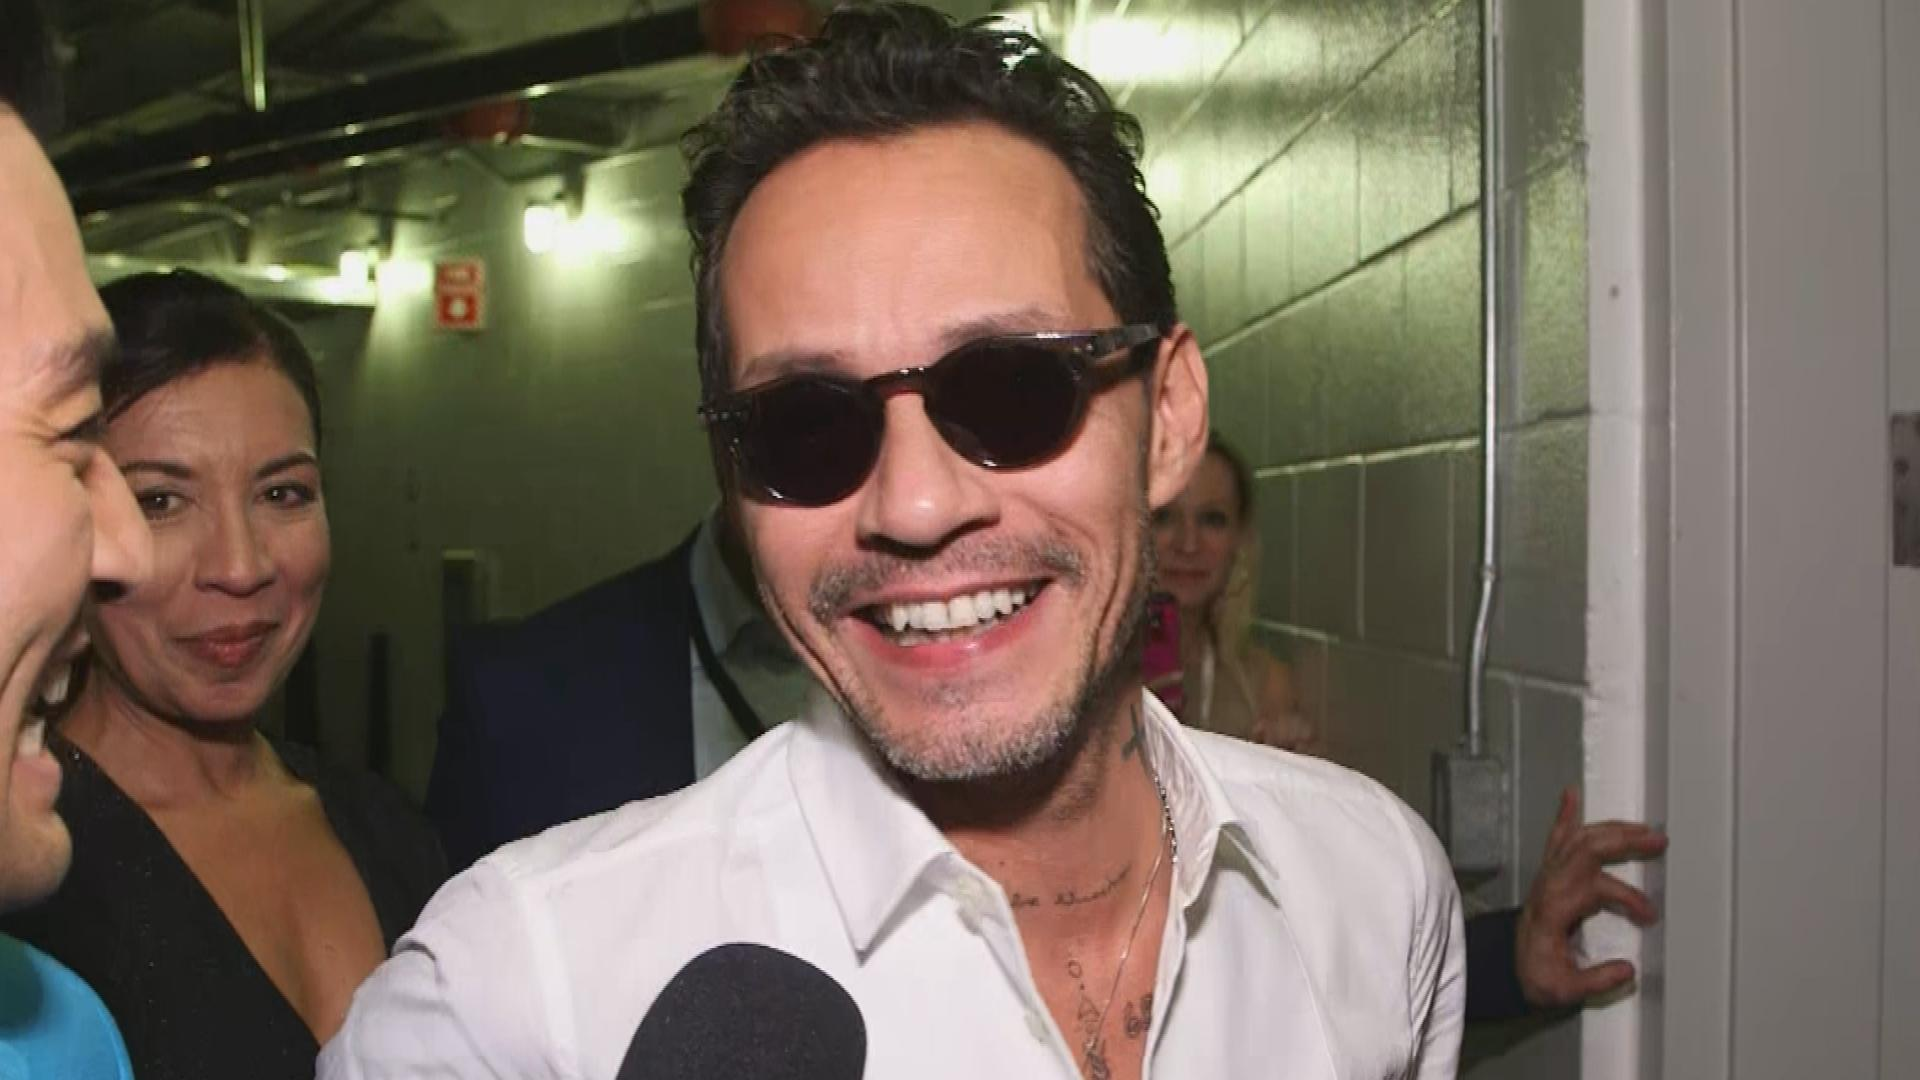 Marc Anthony Says Alex Rodriguez 'Never Has a Bad Moment' After Invasive Photo Surfaces